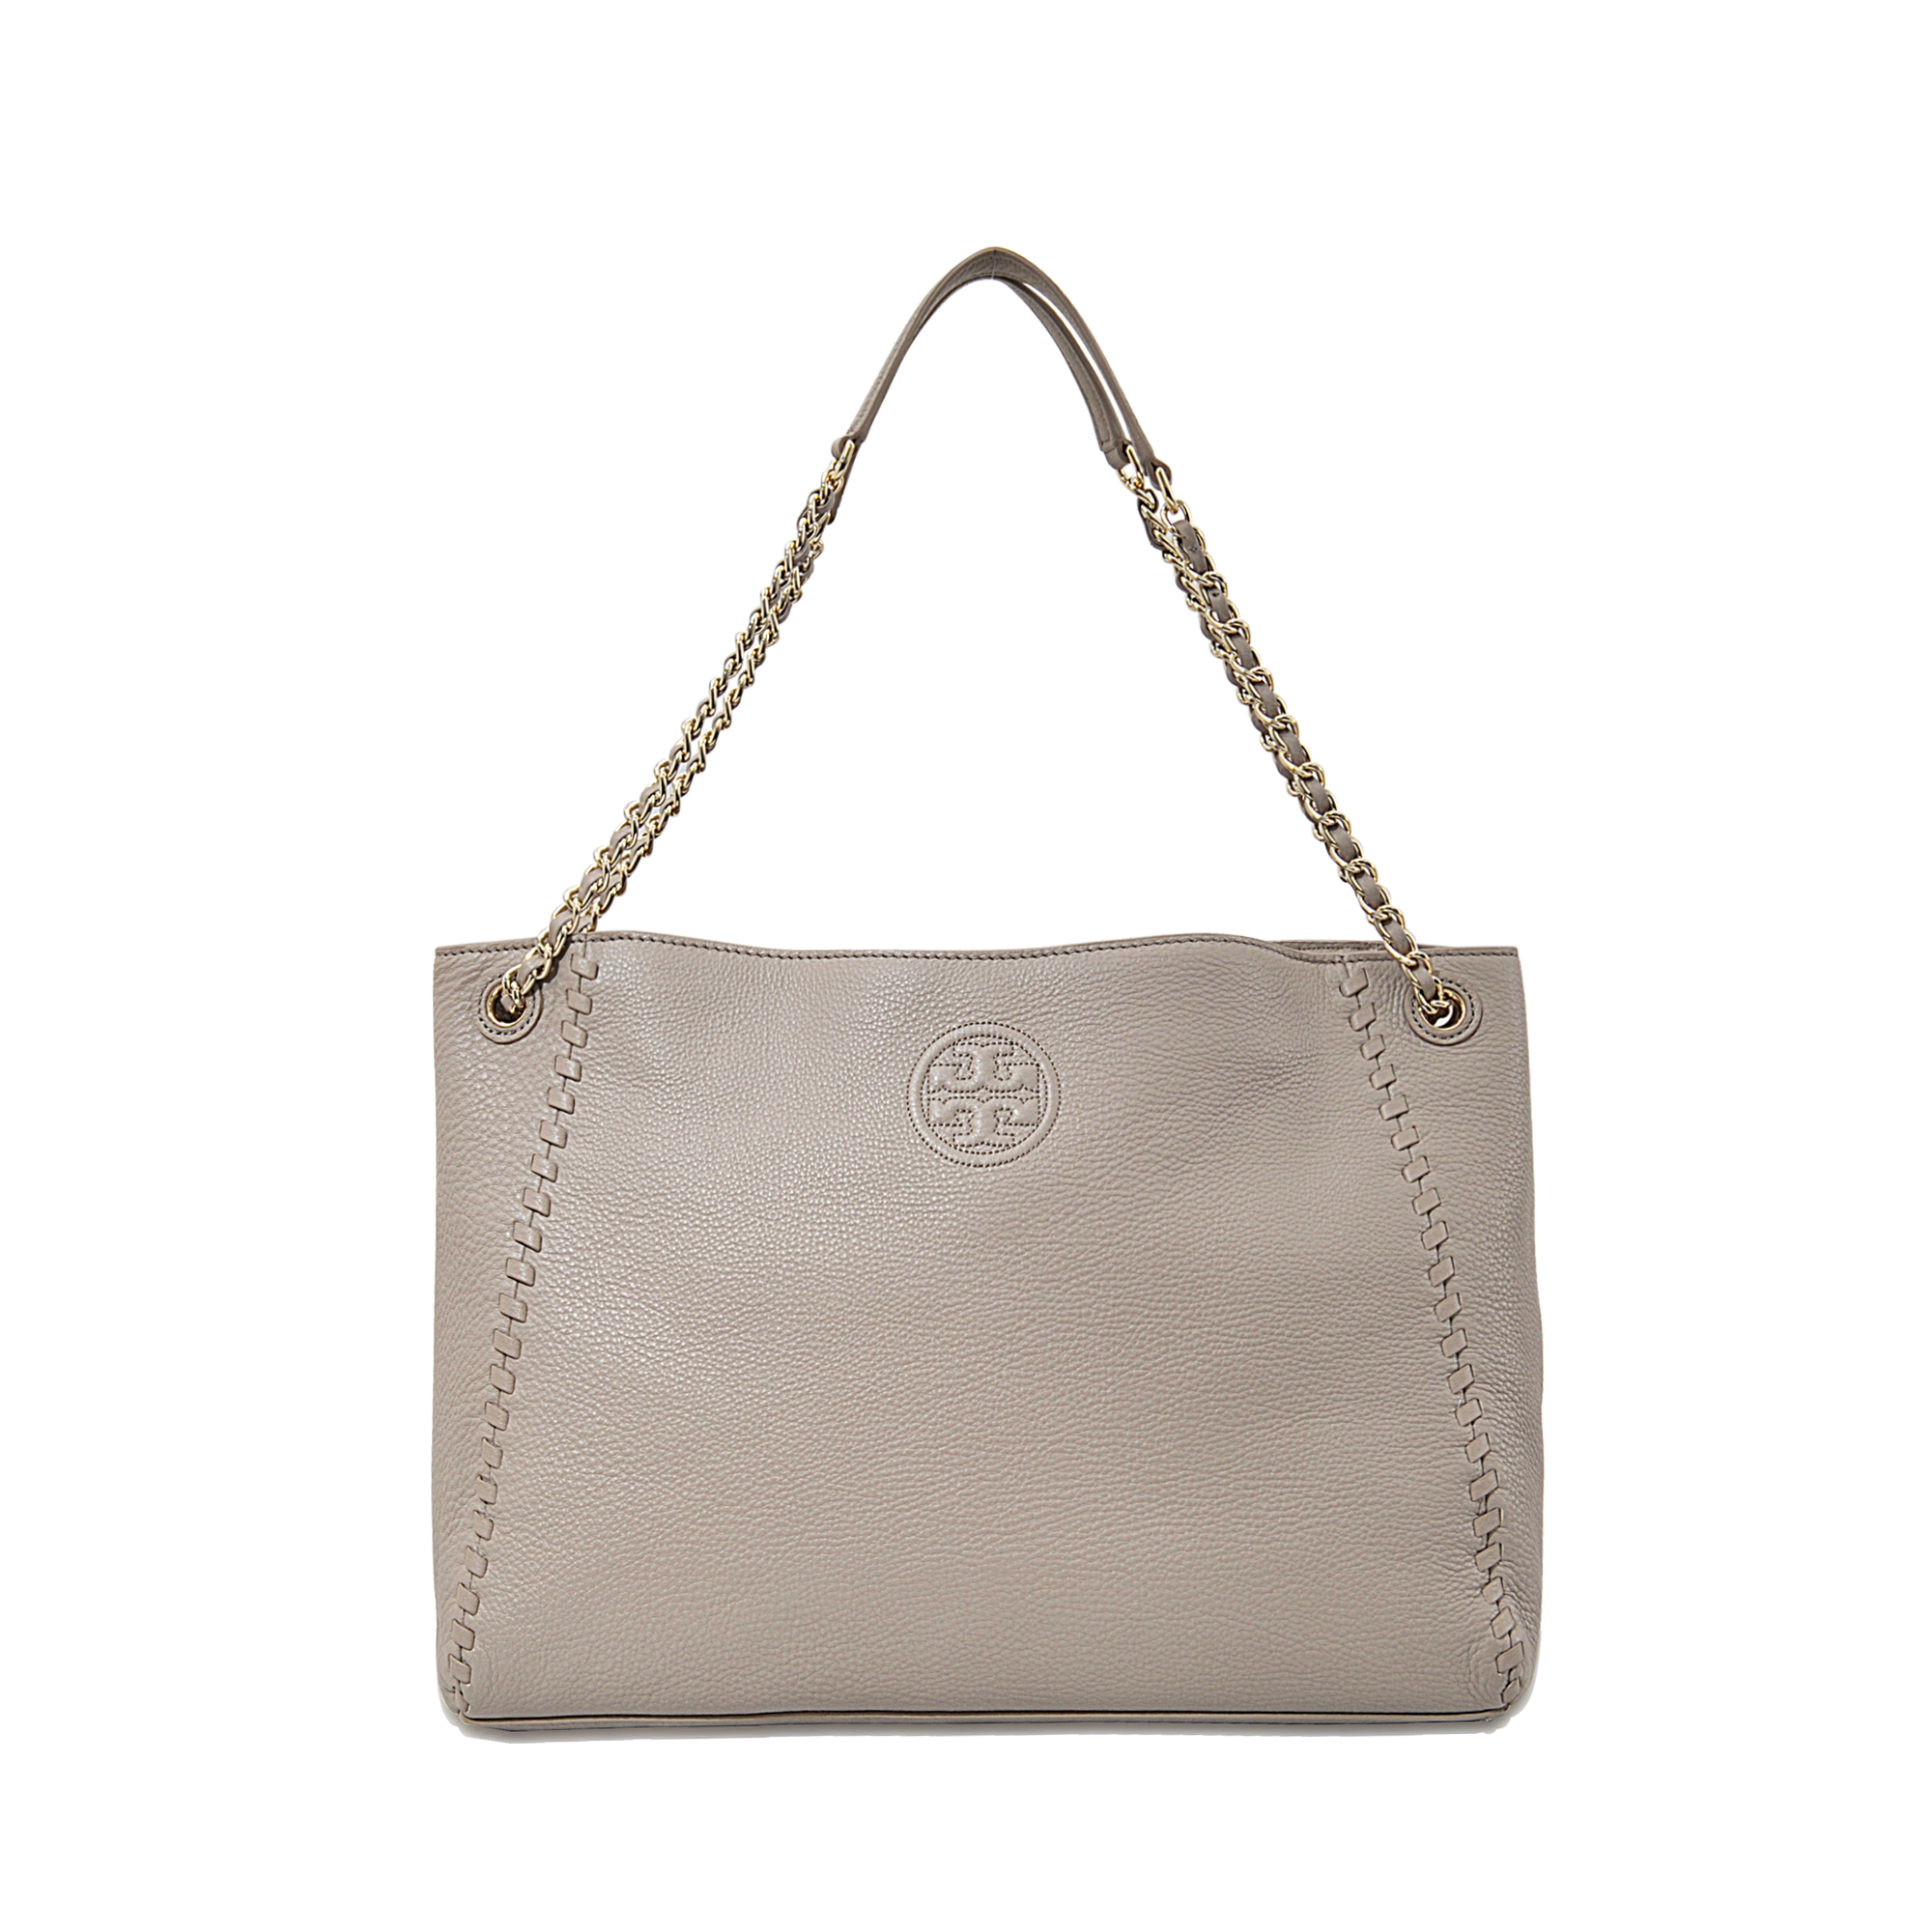 442cb42d9d33 Tory Burch Marion Chain-shoulder Slouchy Tote in Gray - Lyst